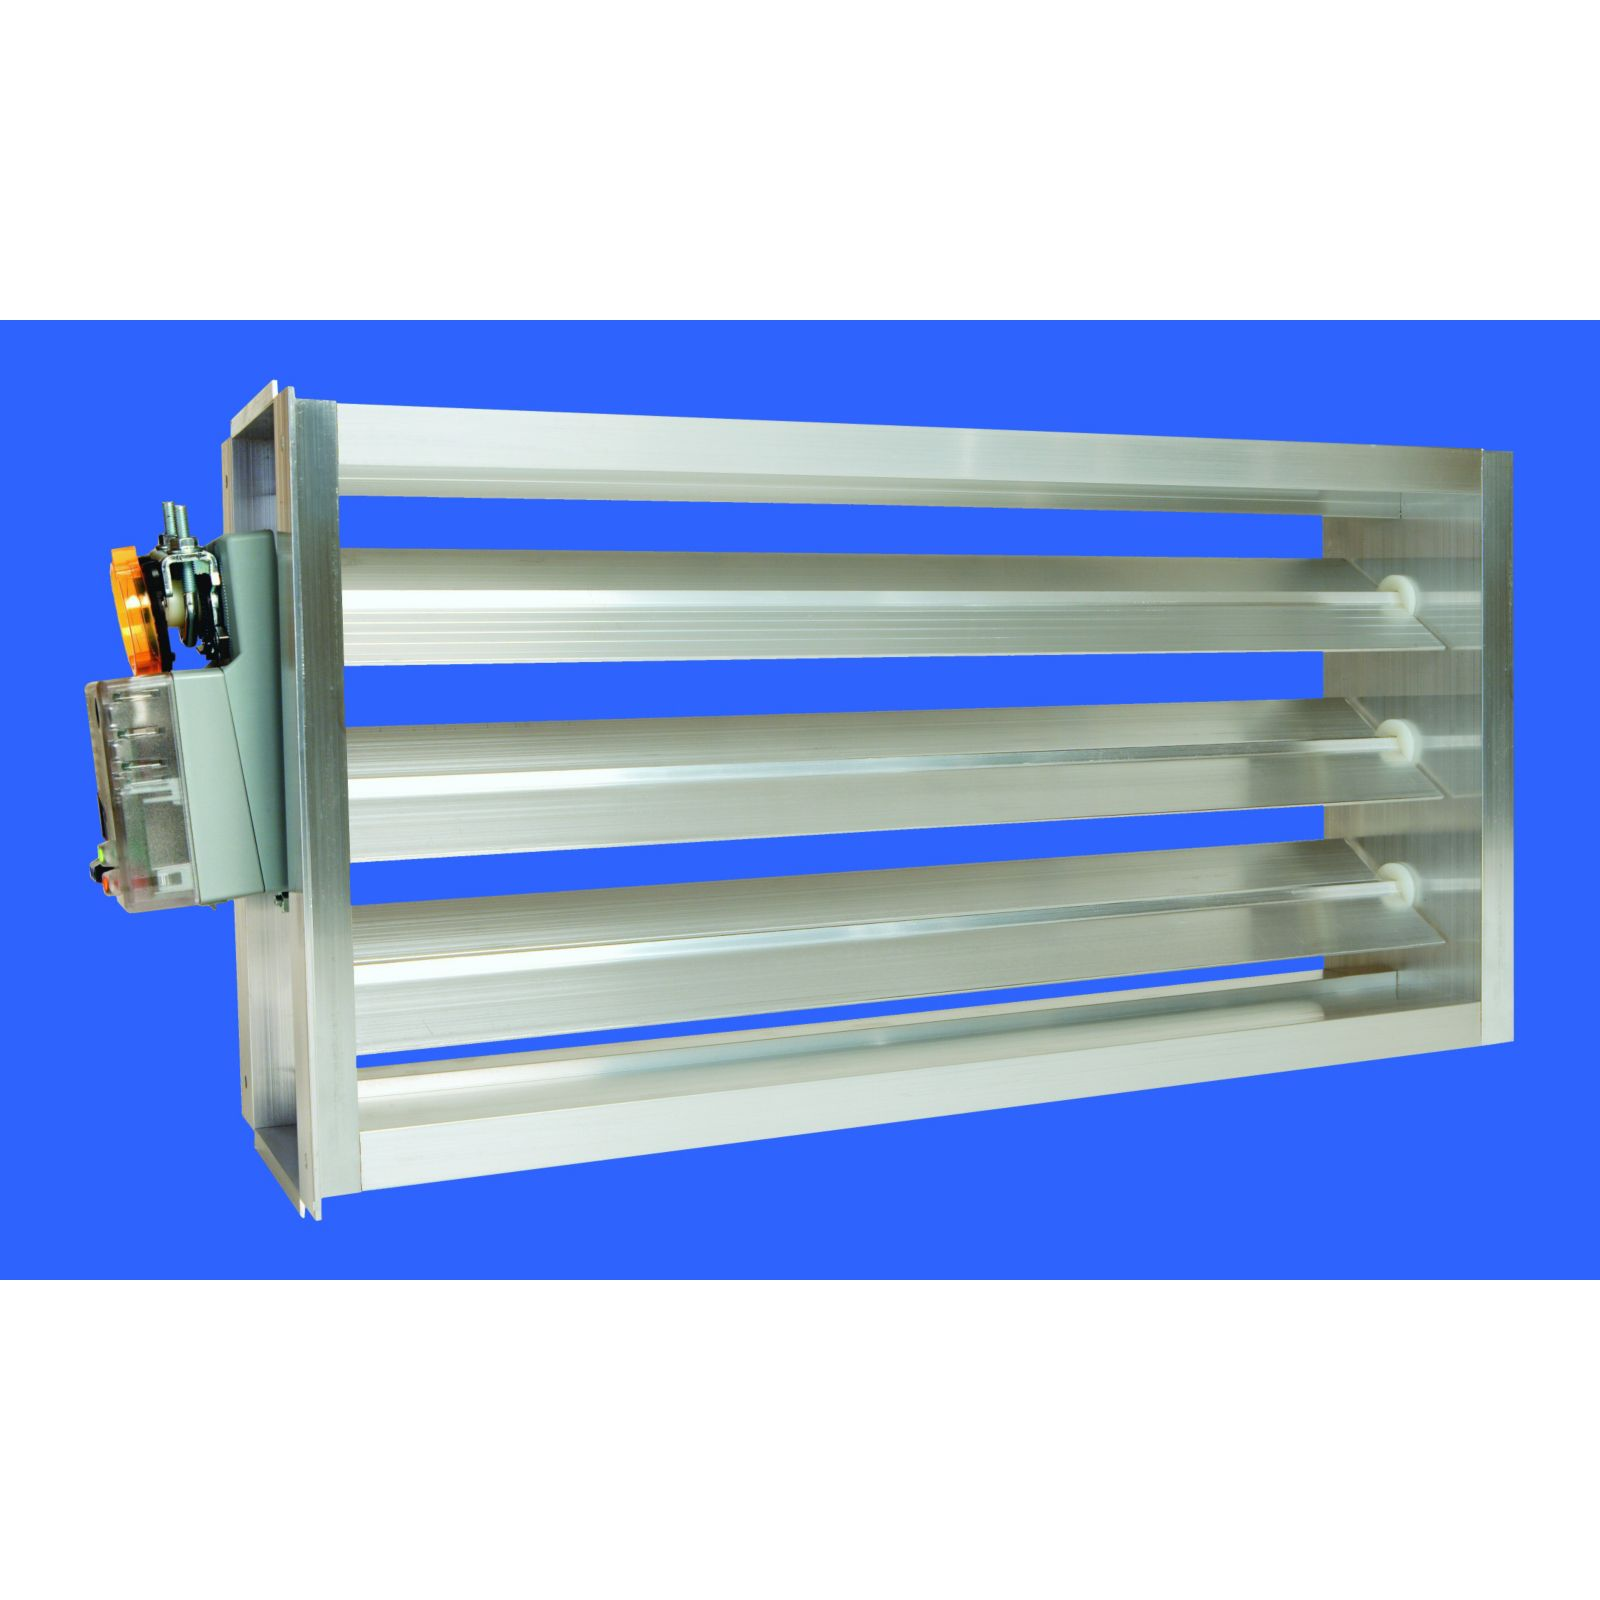 "EWC 8X20 ND - Motorized Ultra-Zone Damper, 8"" X 20"""